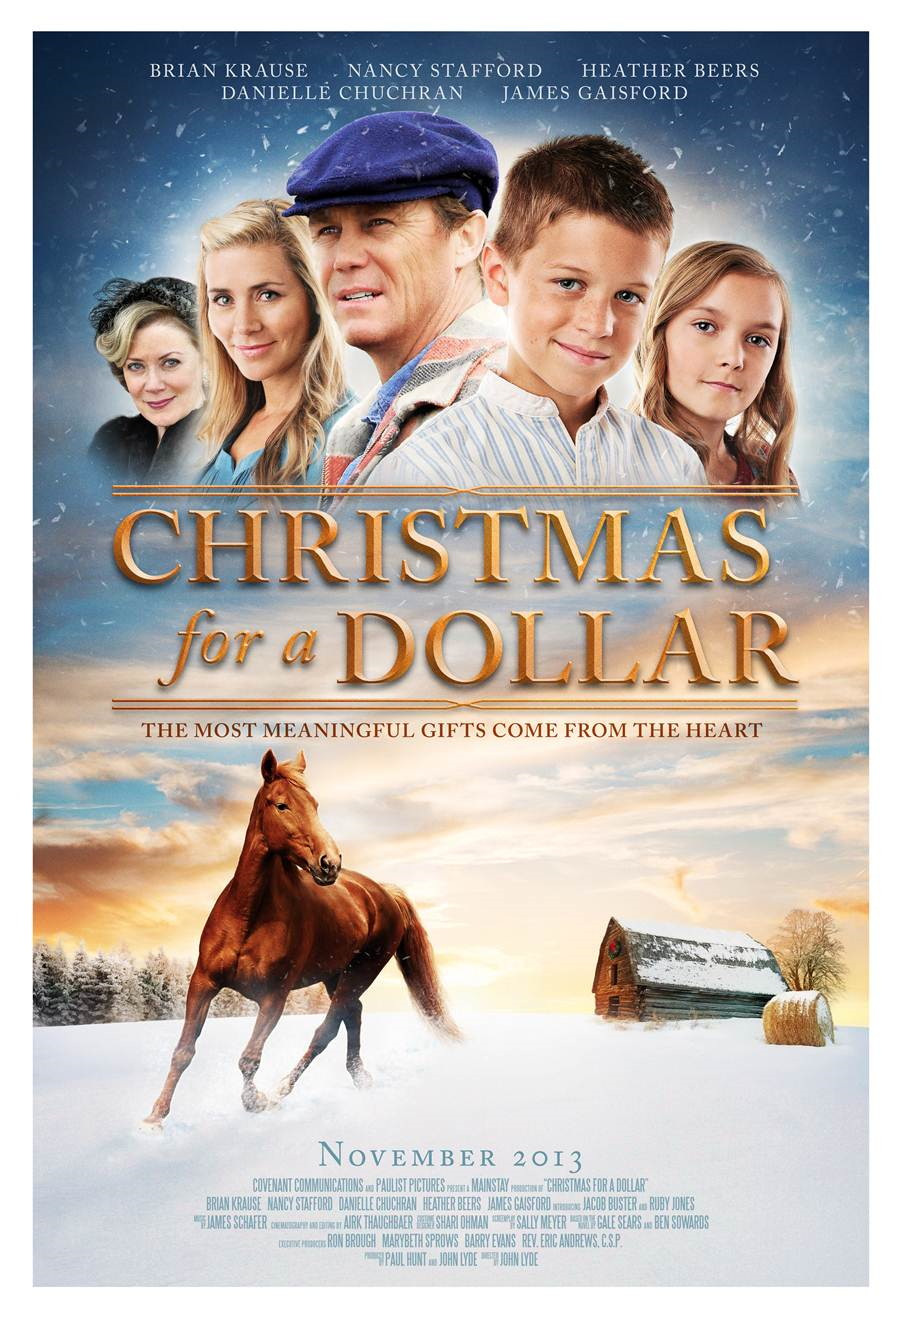 Christmas for a Dollar Christian Movie Film on DVD